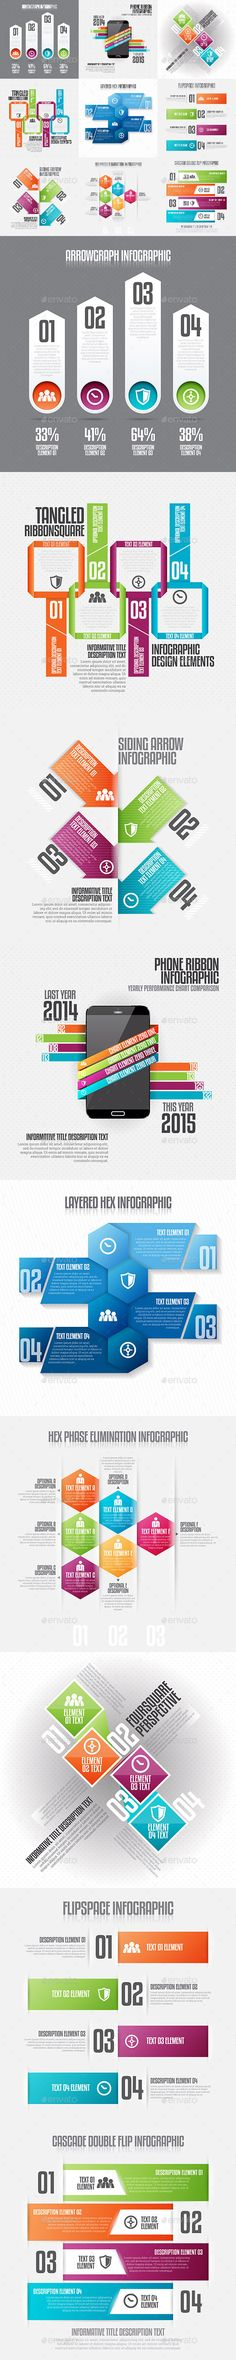 Infographic Set Template PSD, Vector EPS, AI #design Download: http://graphicriver.net/item/infographic-set-20/12999654?ref=ksioks